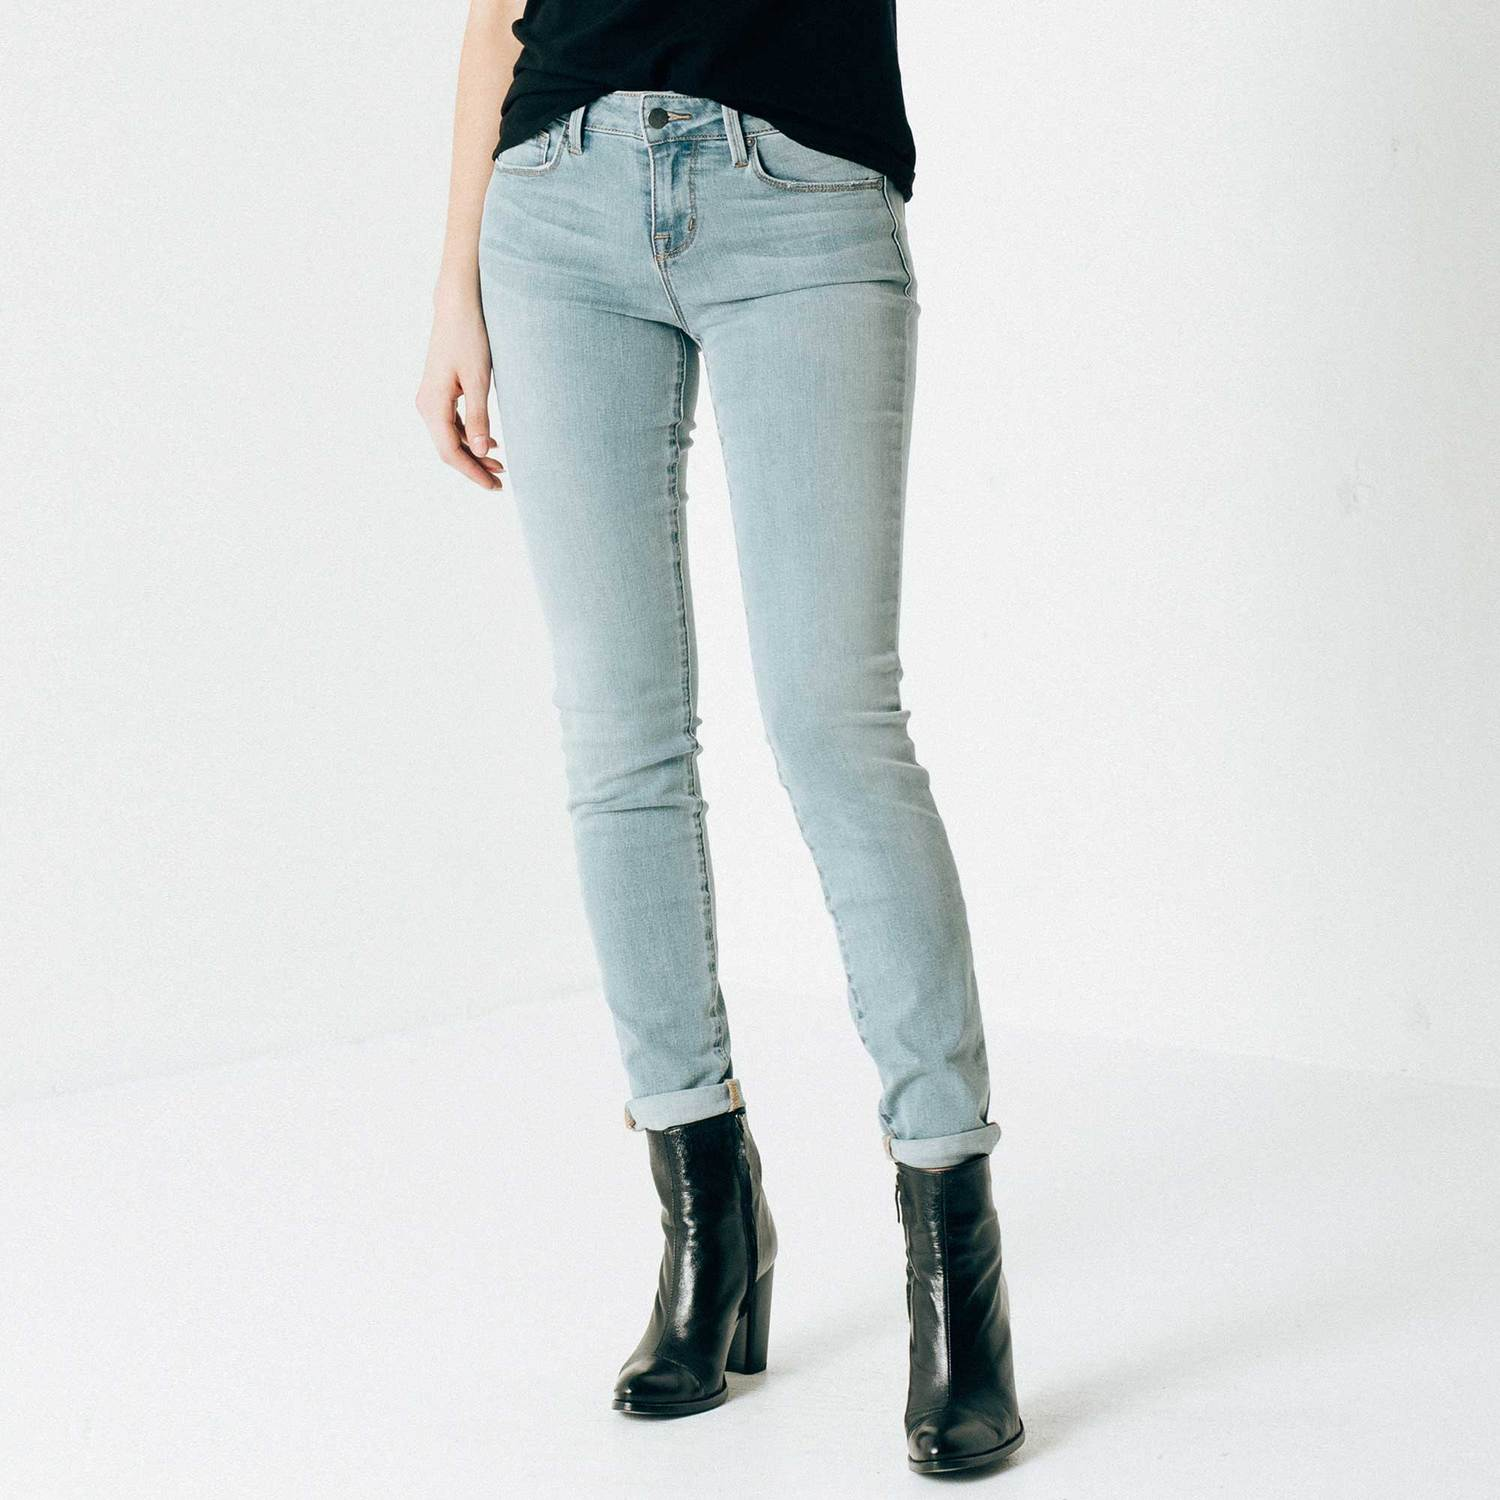 Womens Mid Rise Skinny Jeans In Light Vintage $95 | DSTLD